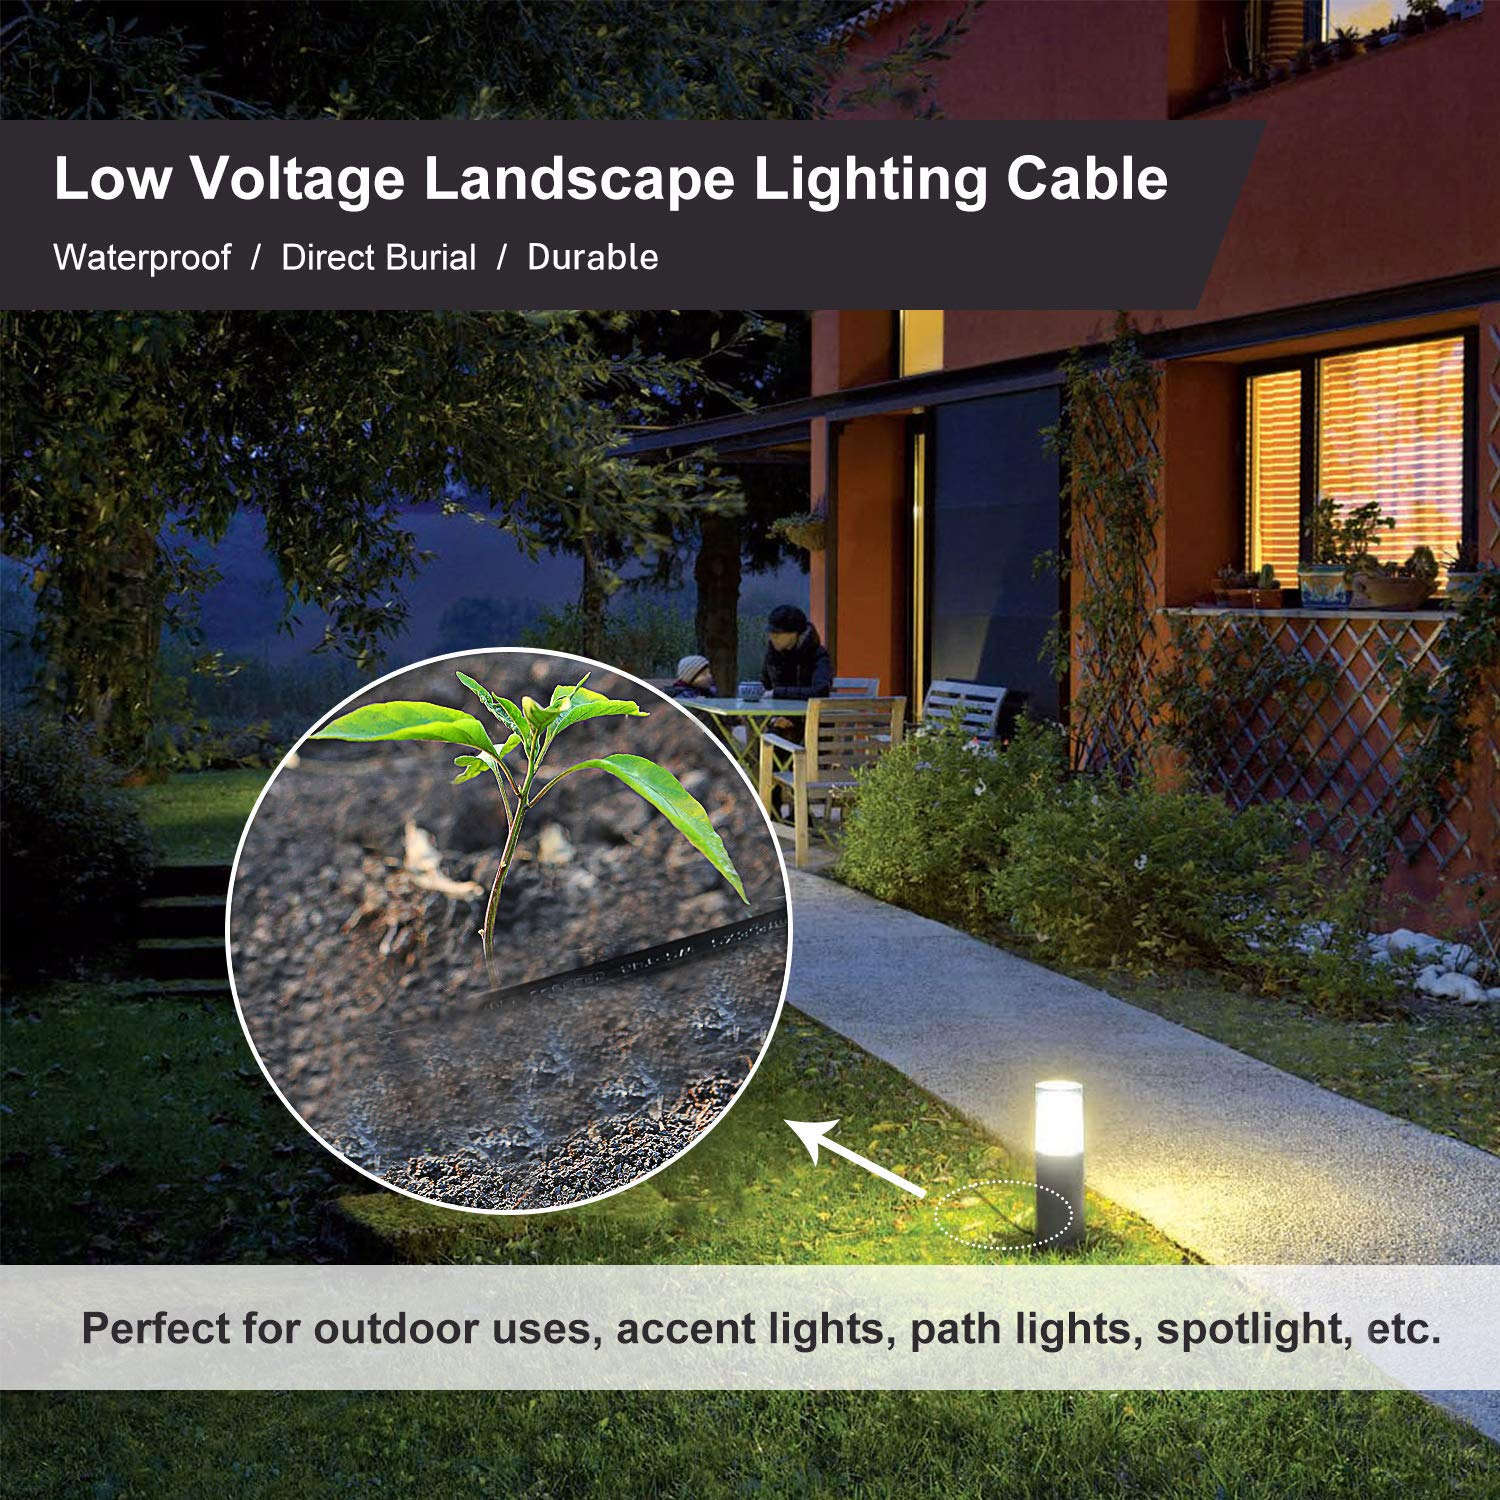 FIRMERST 18//2 Low Voltage Landscape Lighting Cable 100 Feet UL Listed